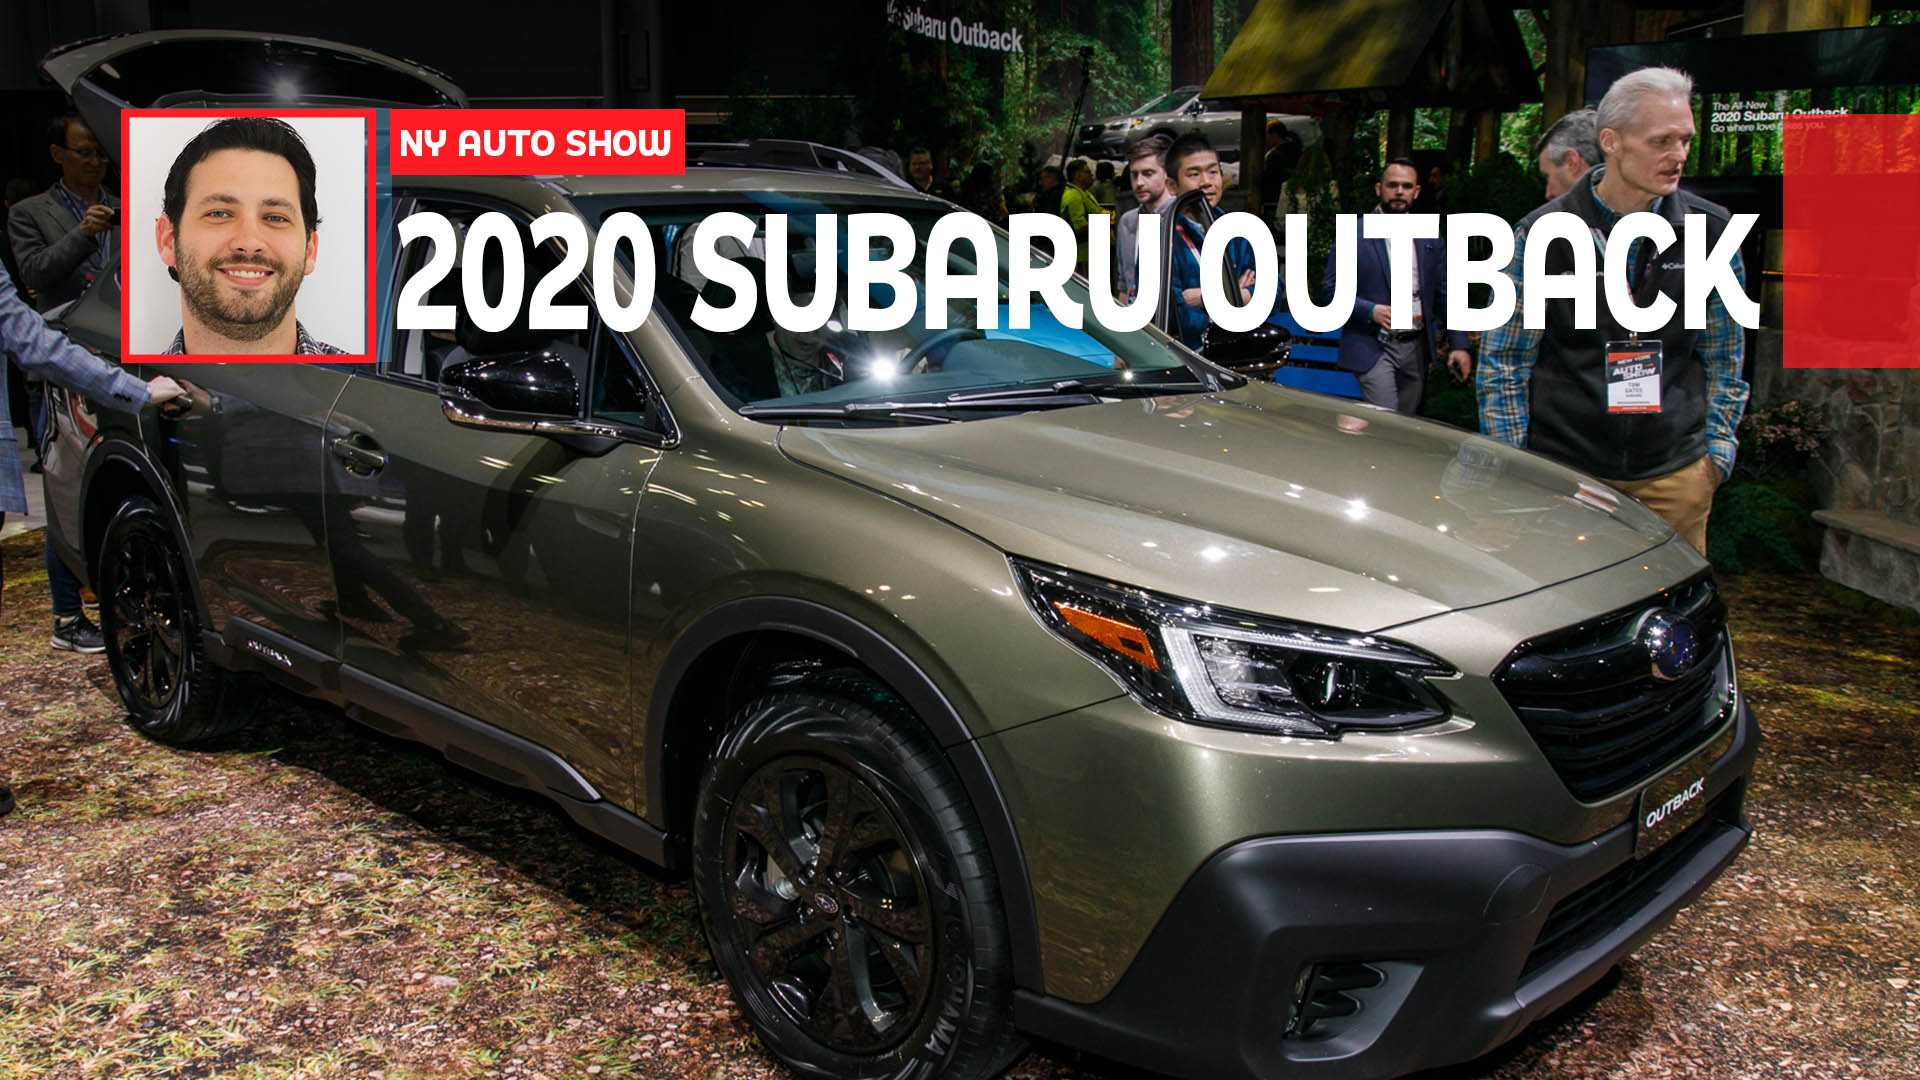 Video: Why The 2020 Subaru Outback Is More Than Just A Legacy Wagon